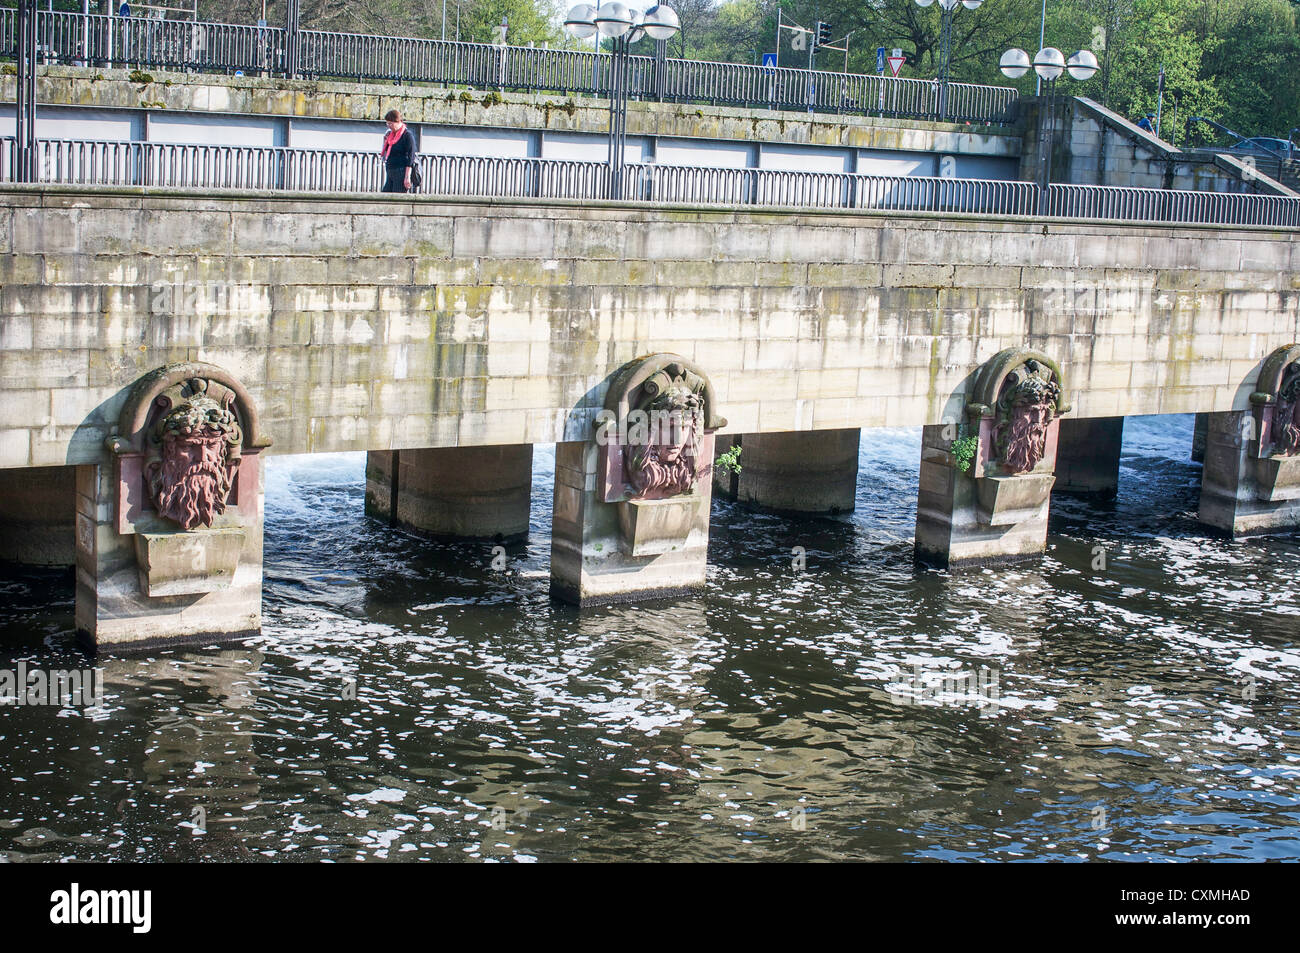 Woman walks over a pedestrian bridge across the water in Hannover, Germany with sculpted river god heads on support - Stock Image